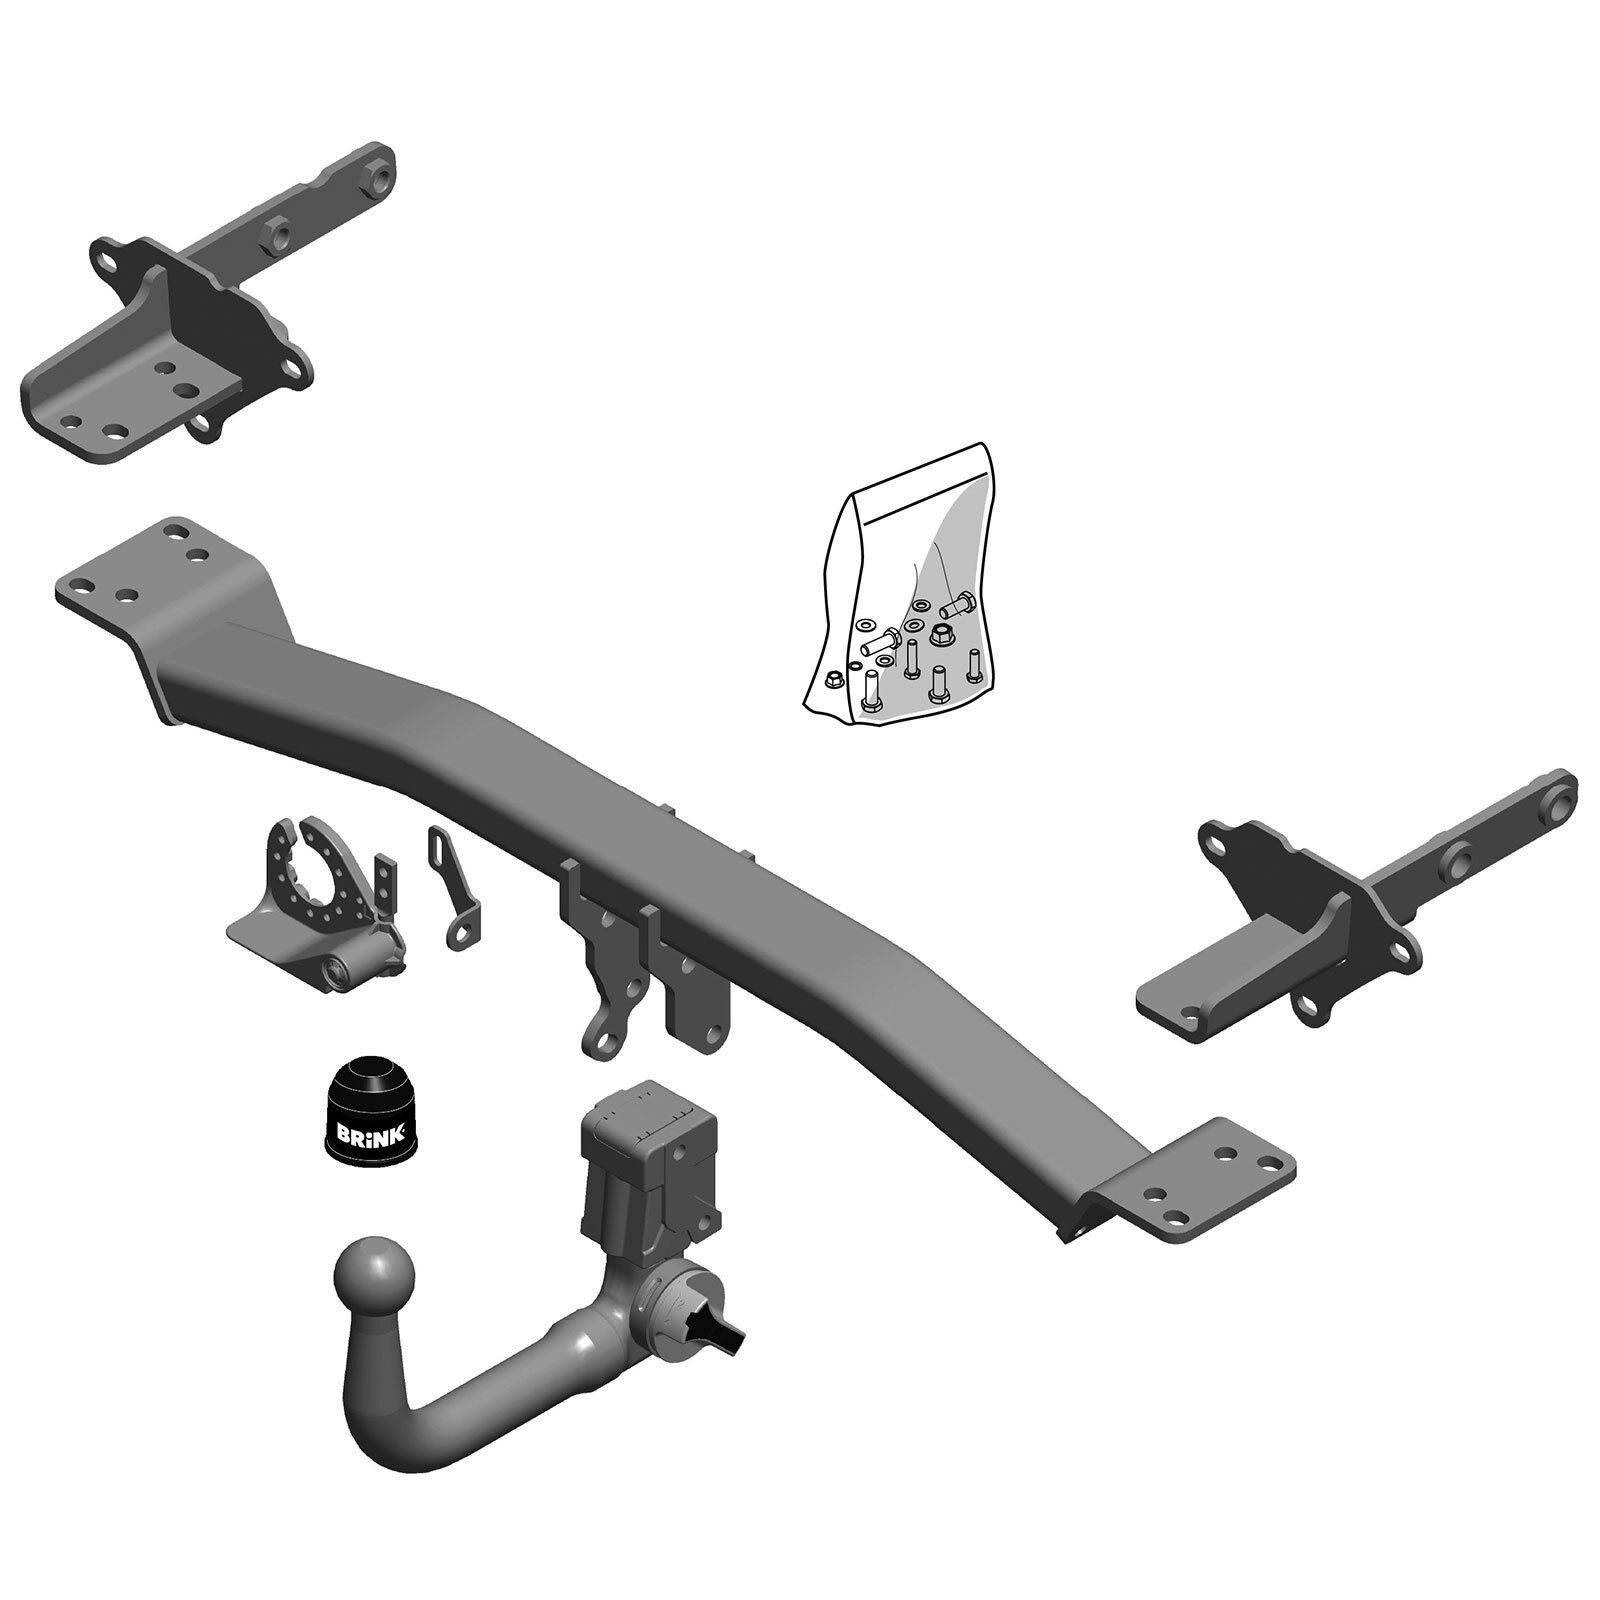 Brink Towbar for Jeep Compass 2016 Onwards - Detachable ...